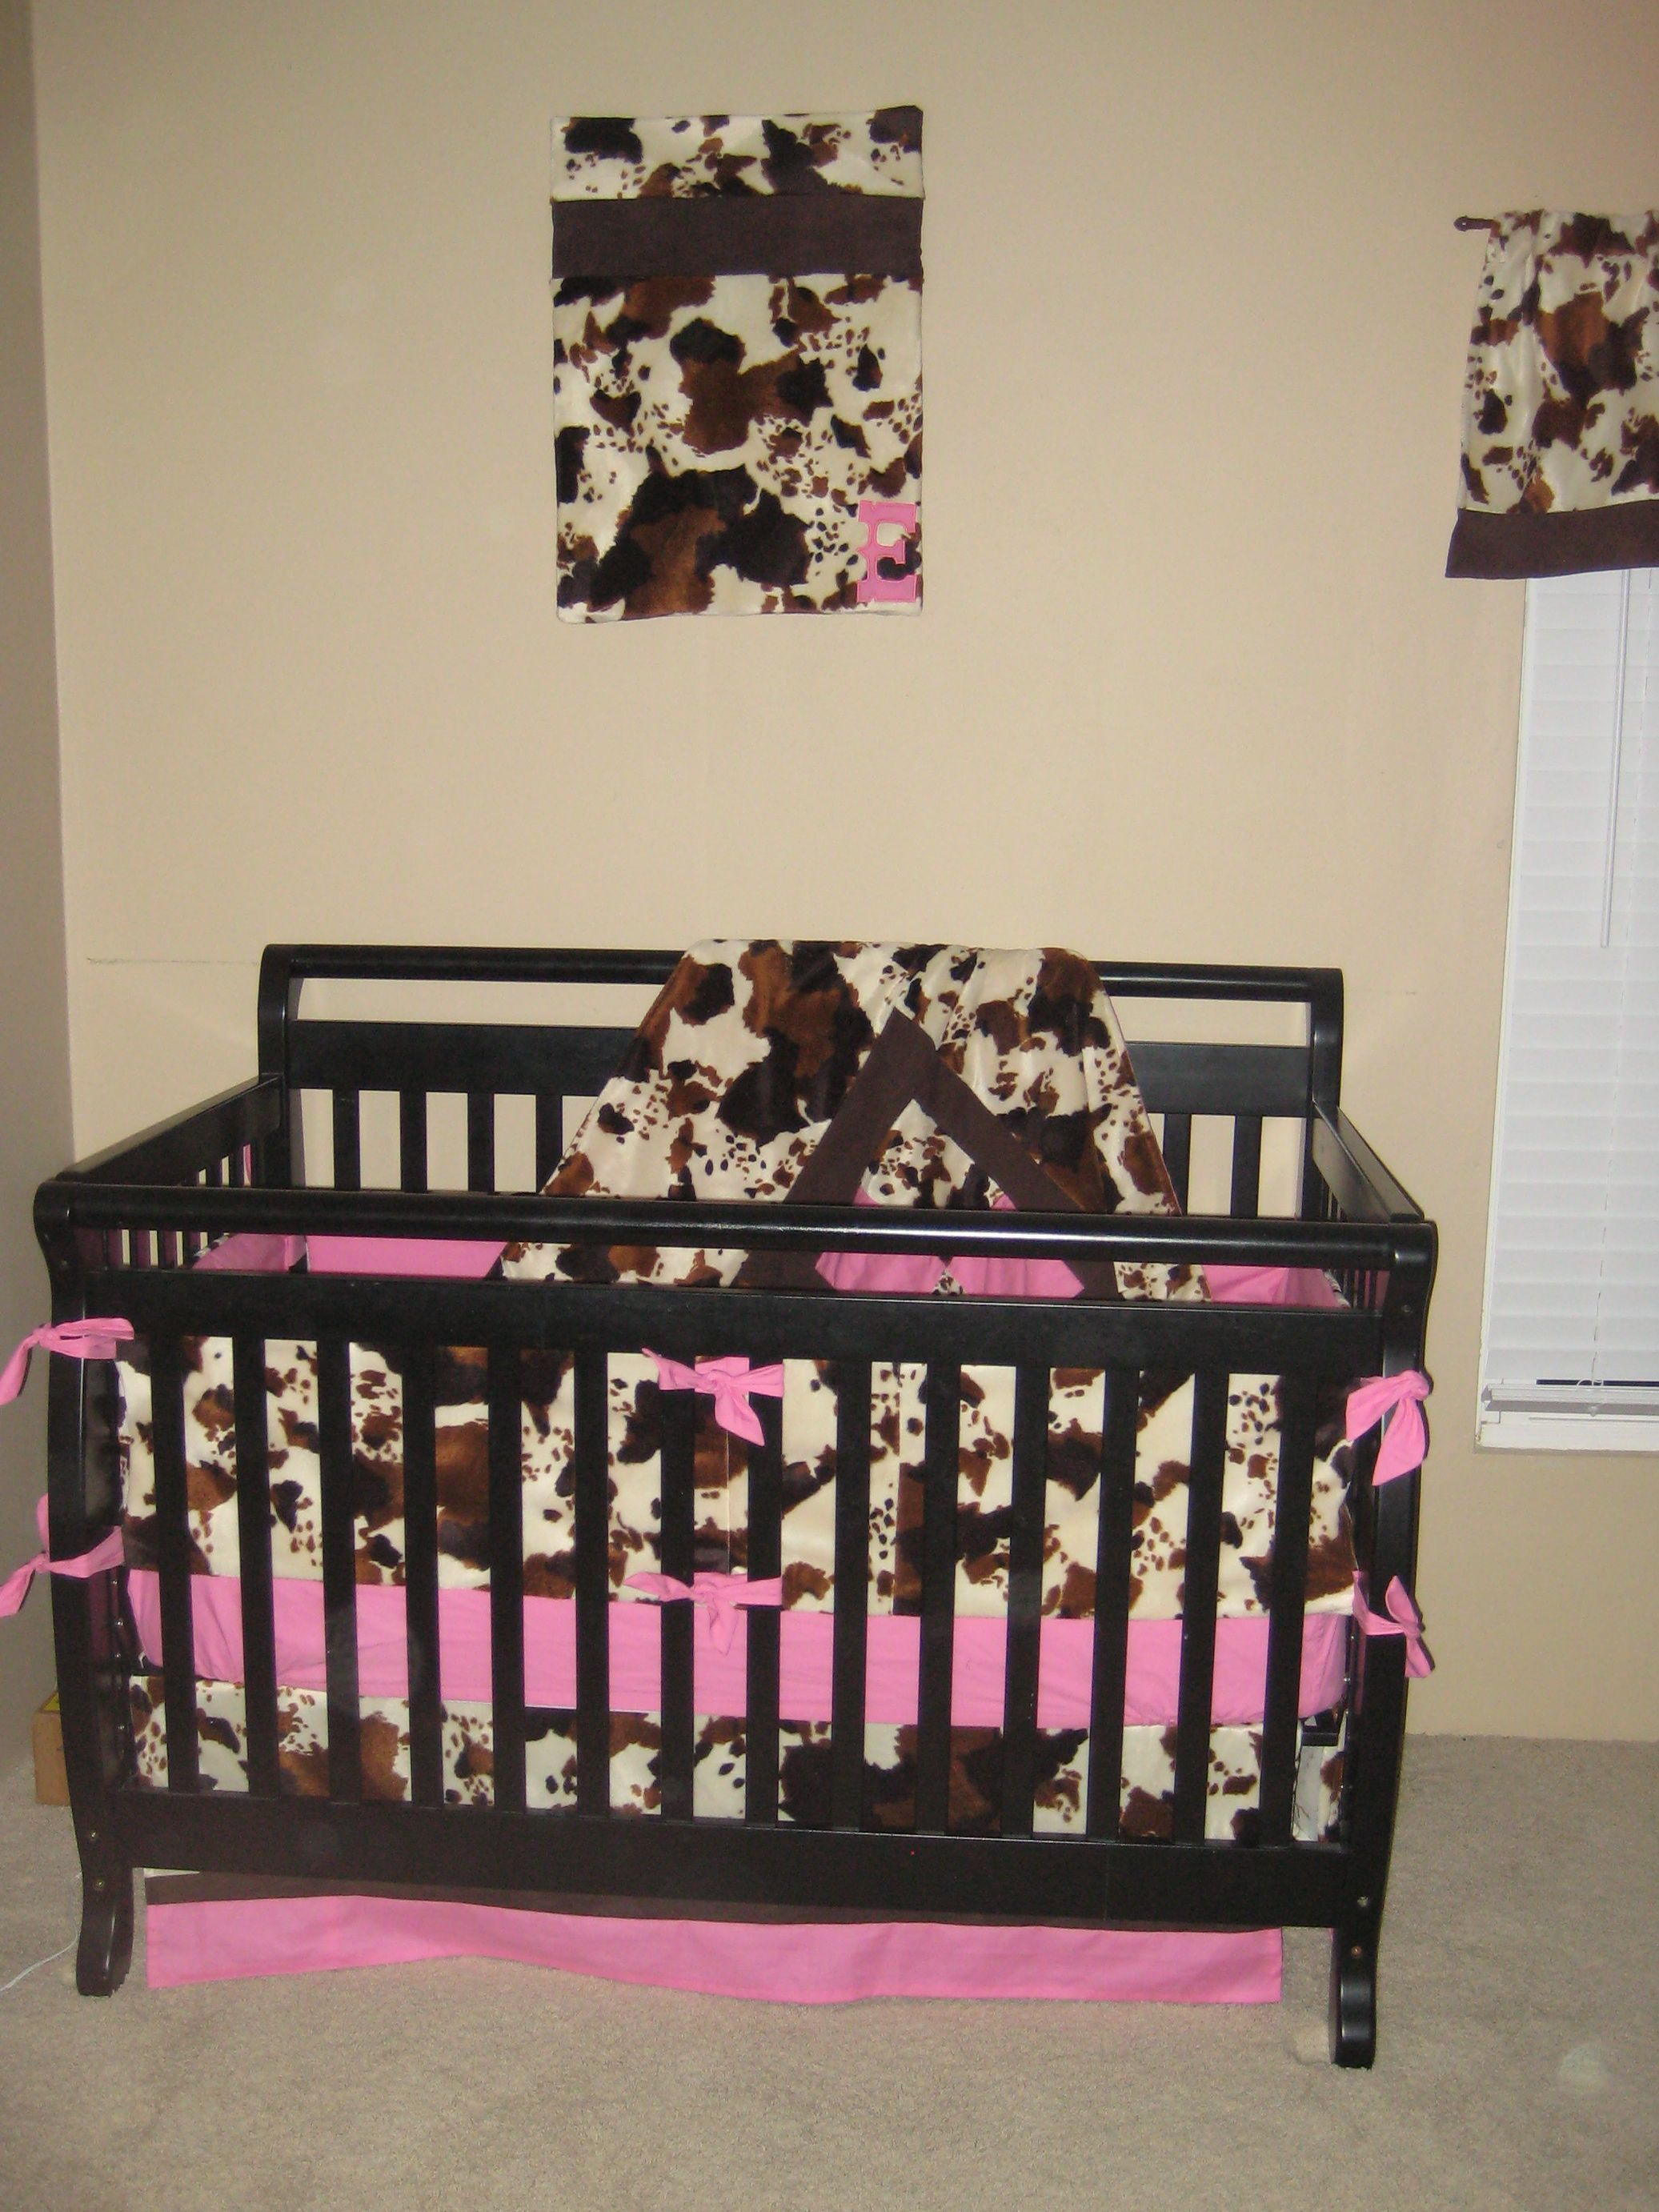 Cowgirl Crib Bedding I Made This For My Daughter Before She Was Born She And My Son Share A Cowboy Girl Th Baby Girl Room Country Baby Rooms Cowgirl Nursery